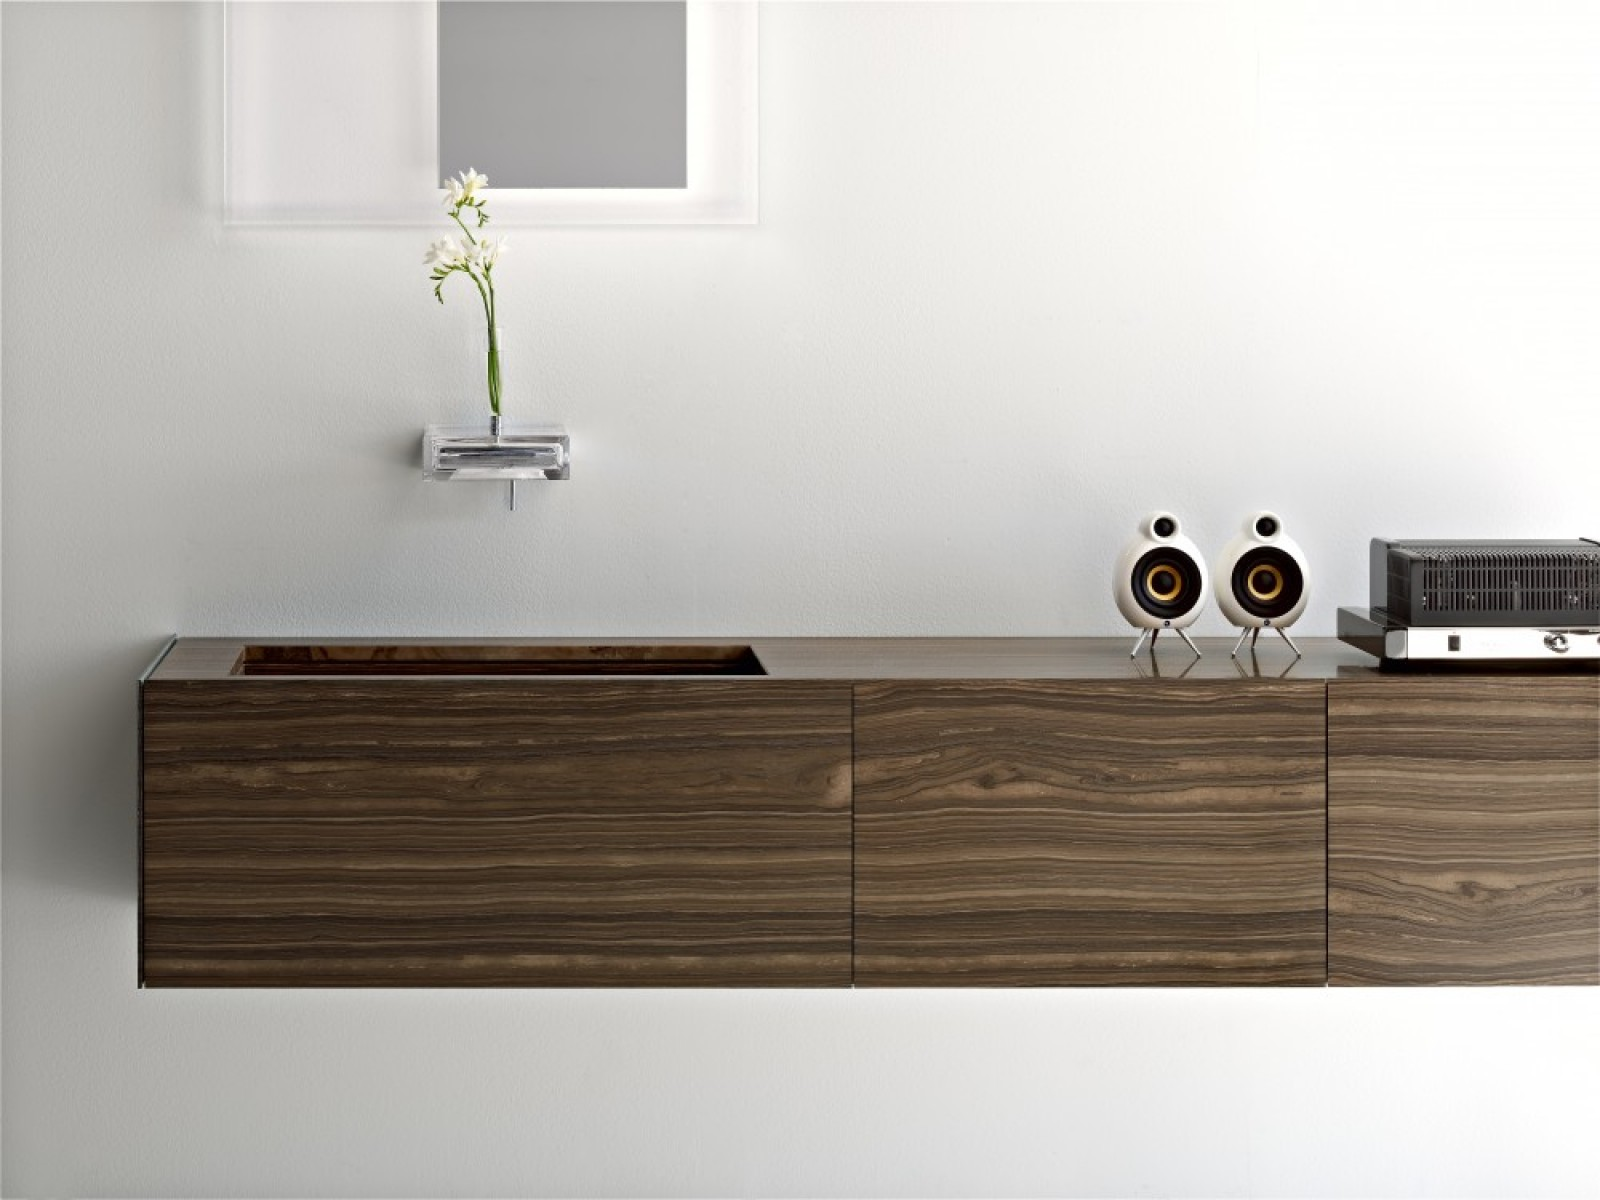 Ultra Modern Italian Bathroom Design on small modern bathroom design ideas, solid wood bathroom vanity, old wood bathroom vanity, small wood bathroom cabinet, dark wood bathroom vanity, small wood bar tops, modern wood bathroom vanity,